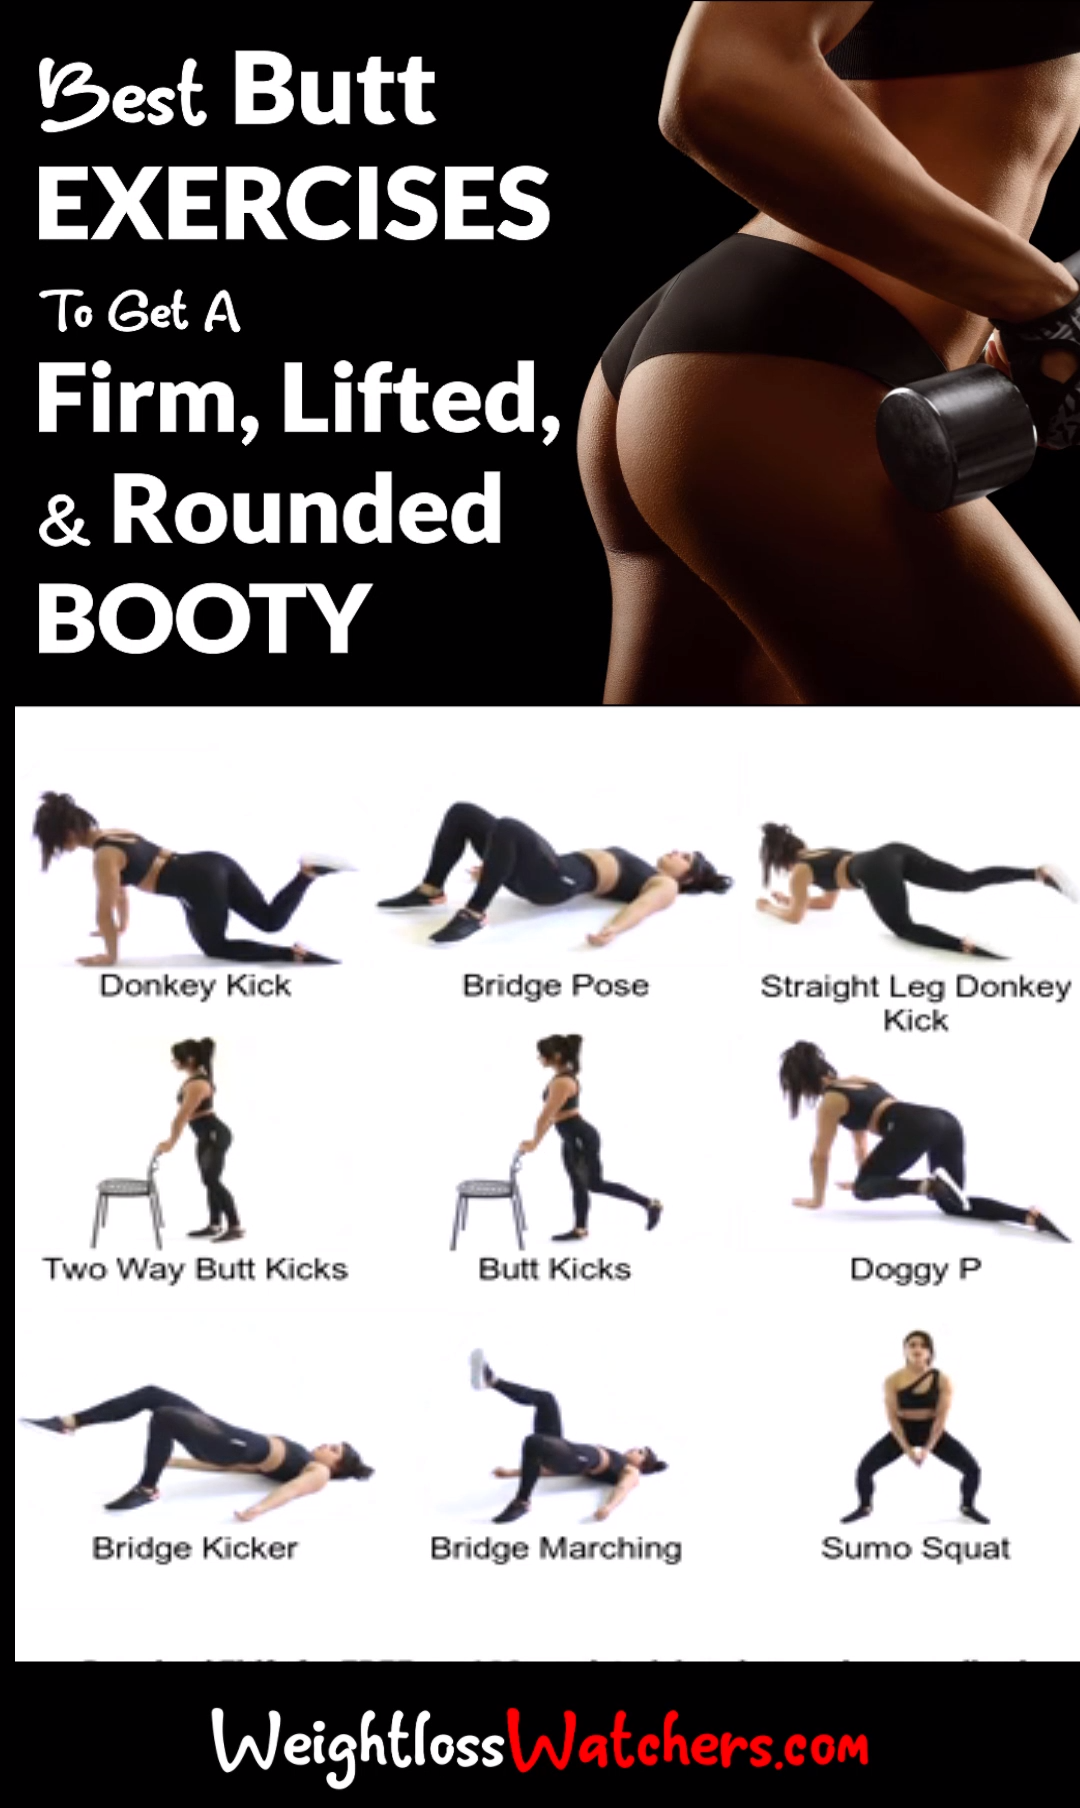 Best Butt Exercises To Get A Firm, Lifted, And Rounded Booty #And #Lifted, #Boot…